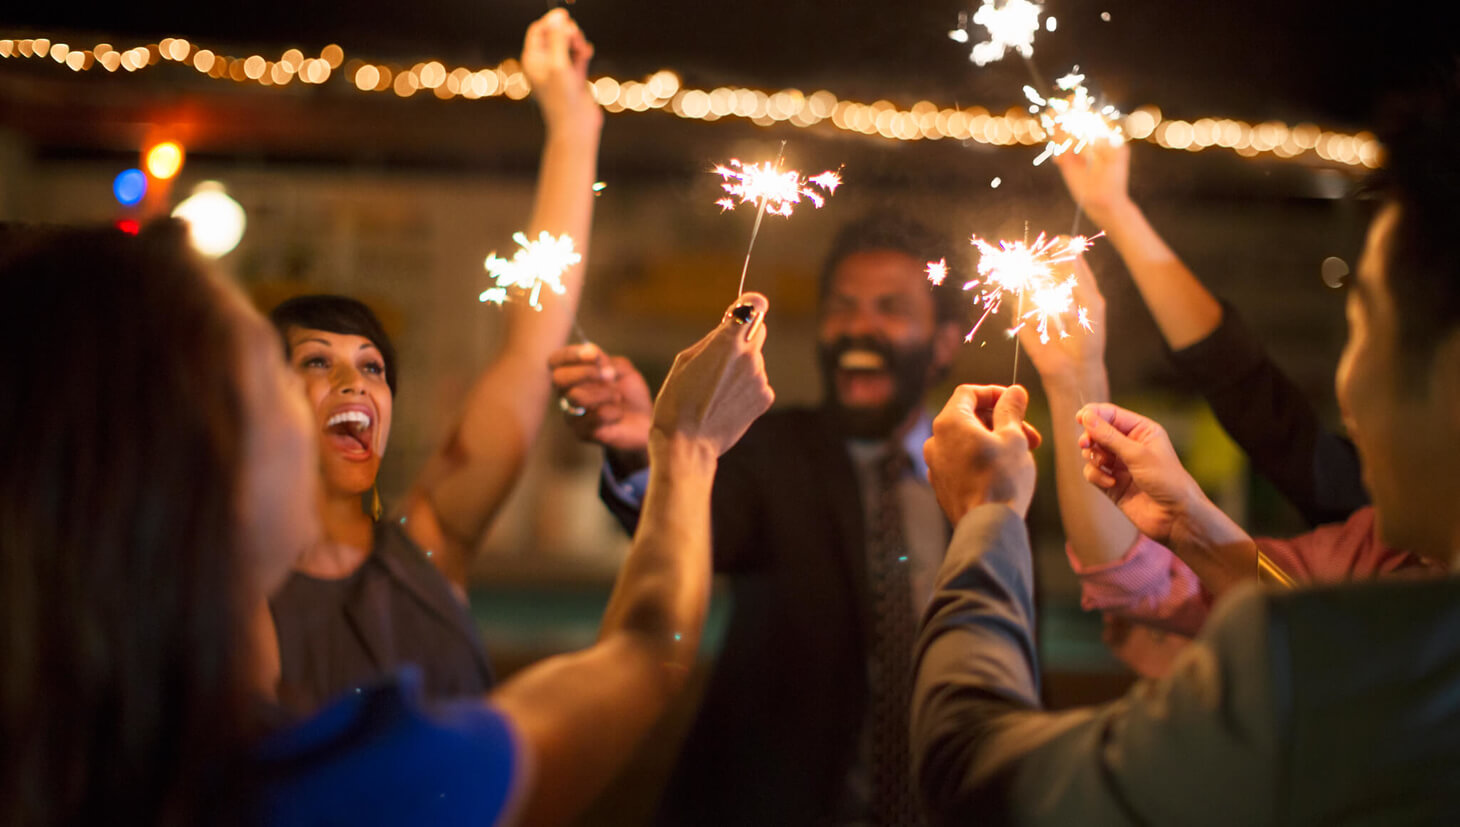 People having a celebration with sparklers